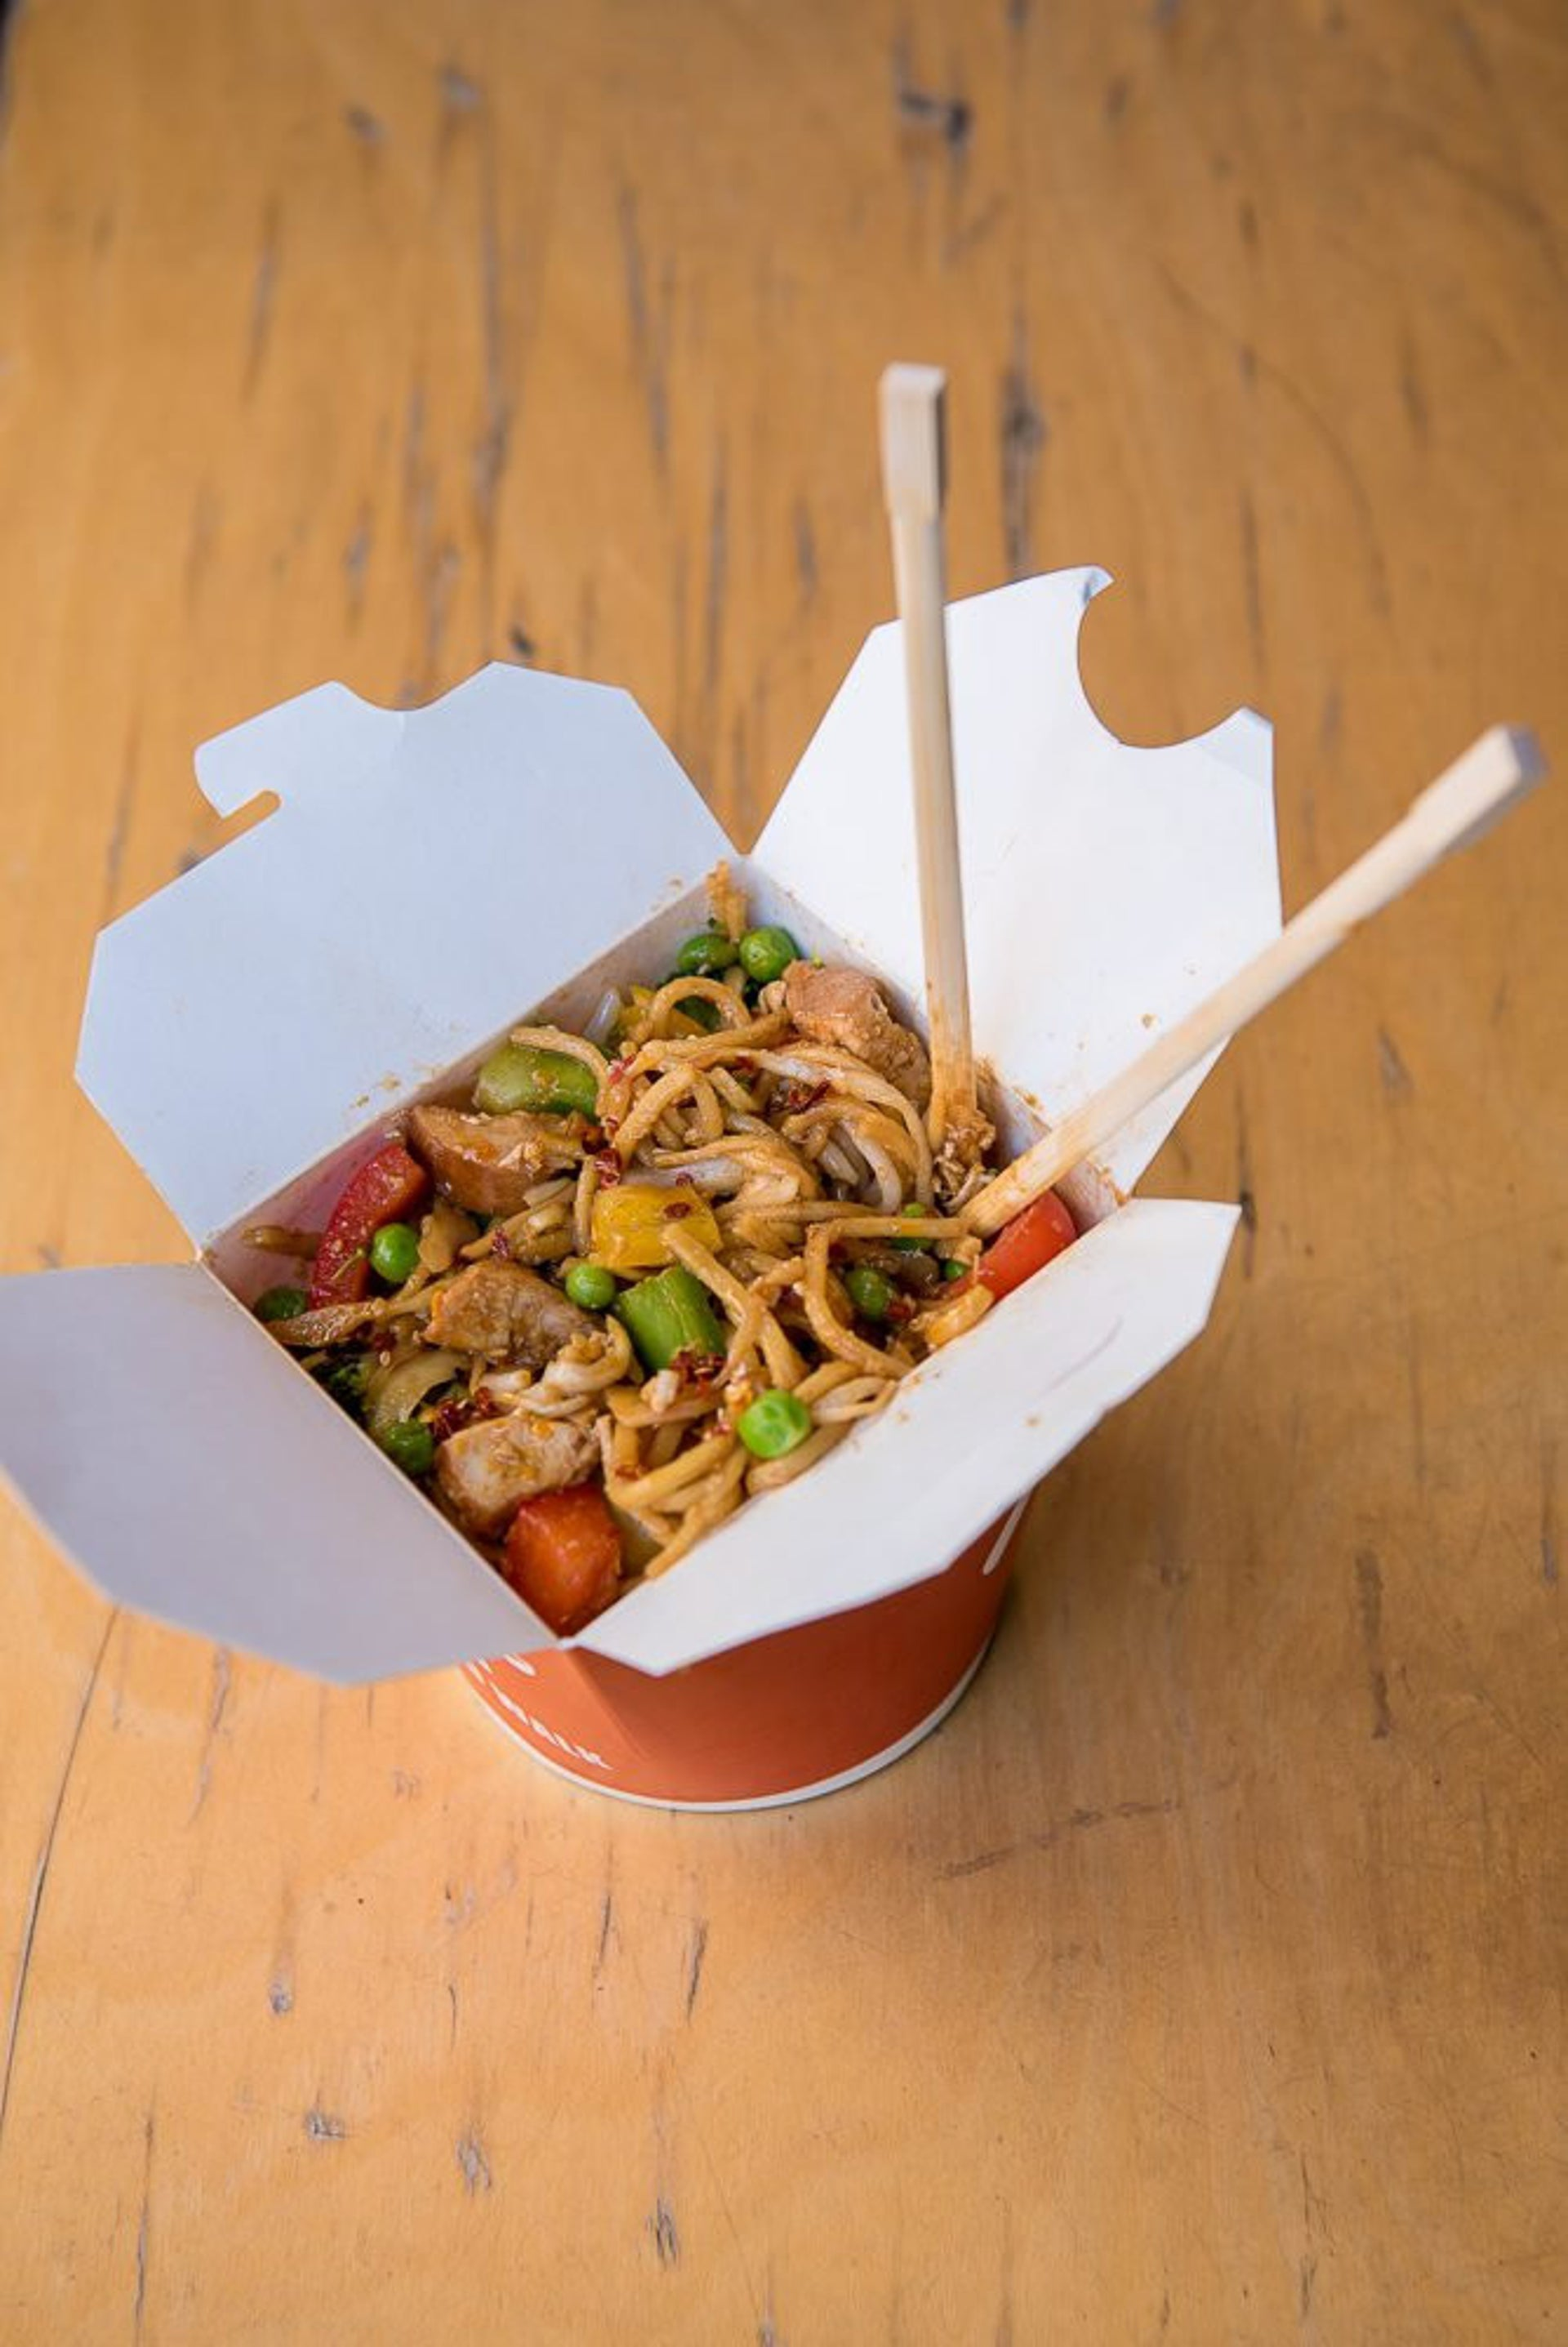 A noodles dish from Wok to Walk. Prepare to queue.